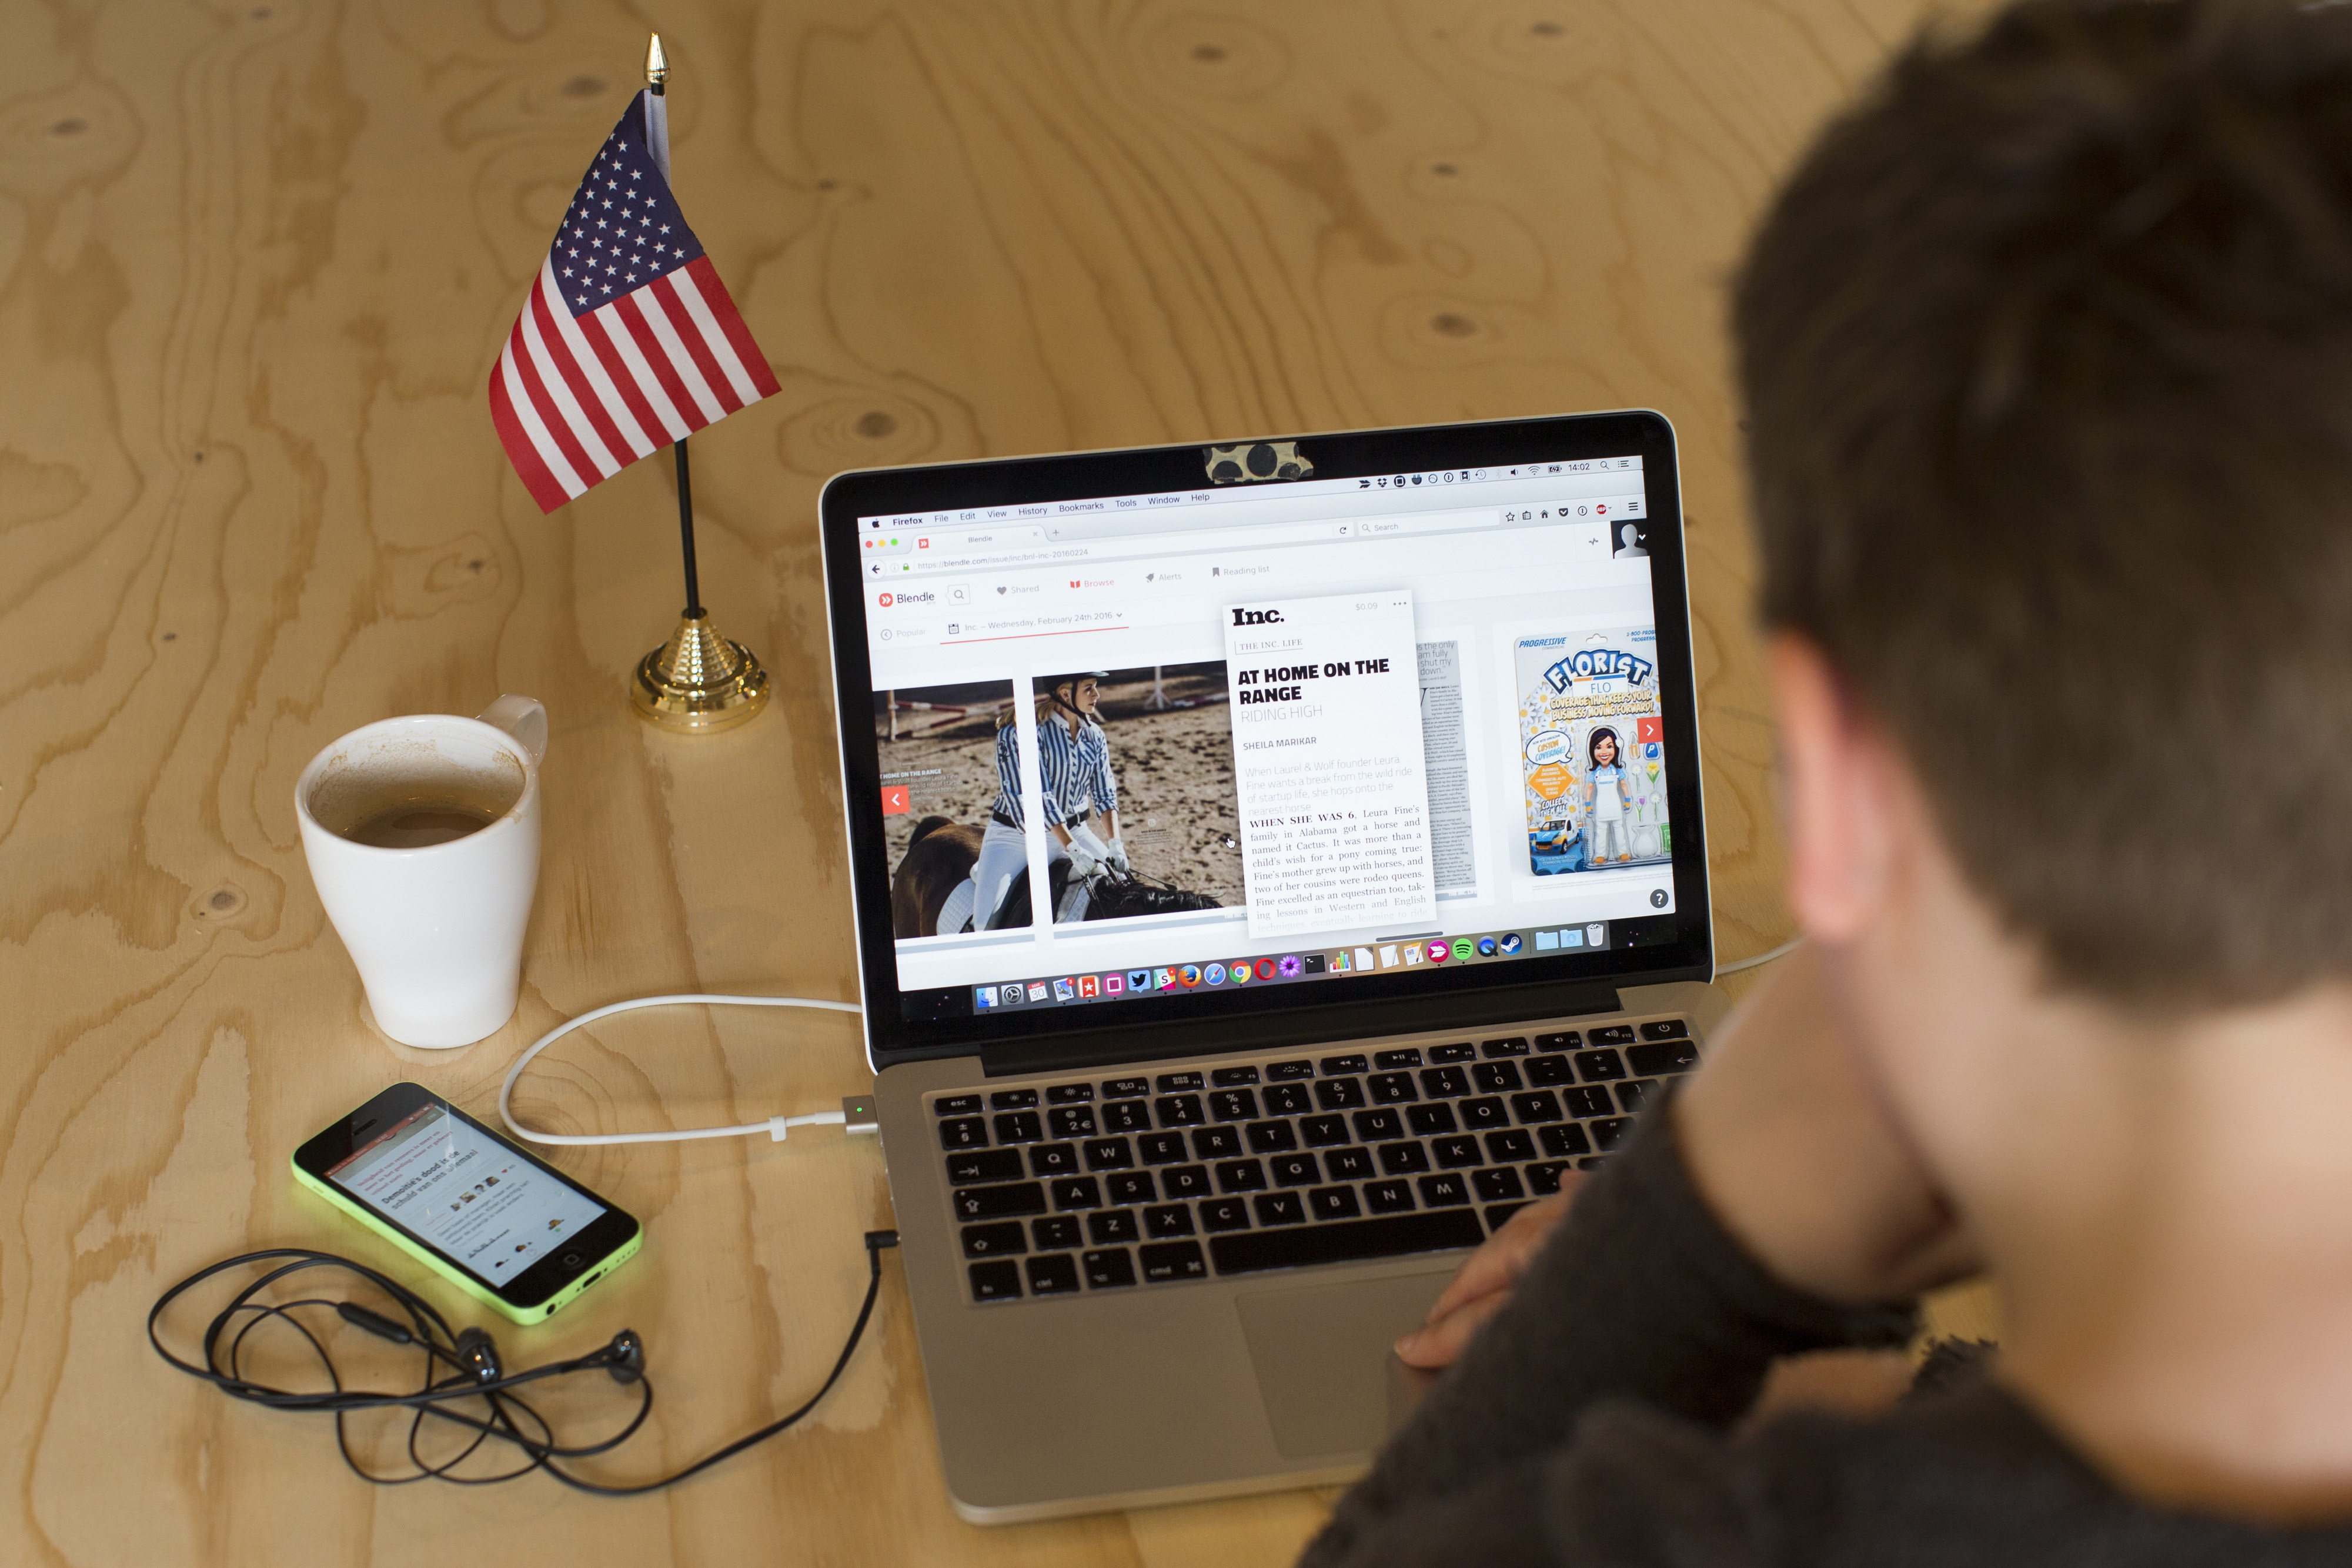 A person sits at a table with an open laptop computer, a phone plugged into it, a cup of coffee, and a small American flag on a self-standing stick.